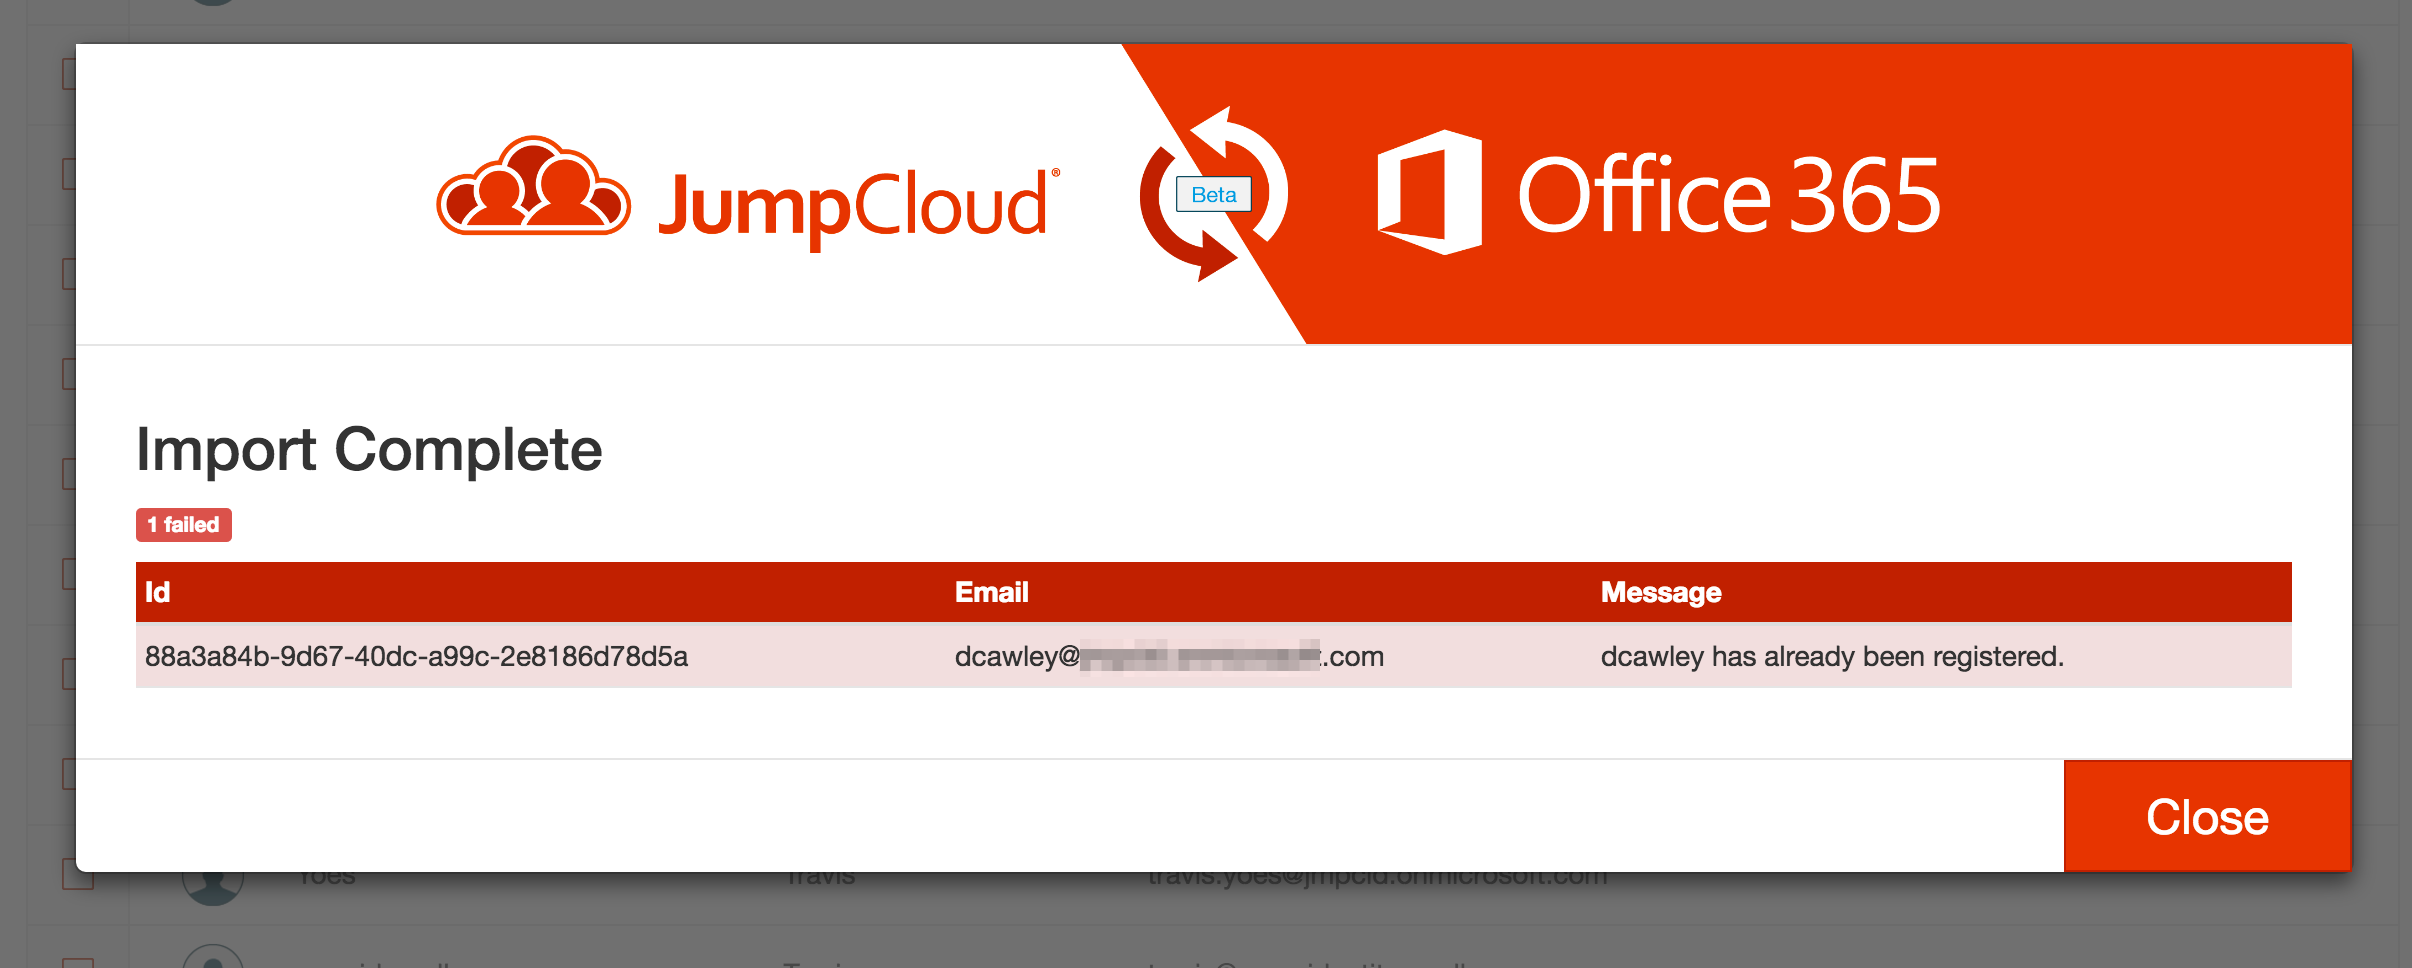 Office 365 and JumpCloud integration